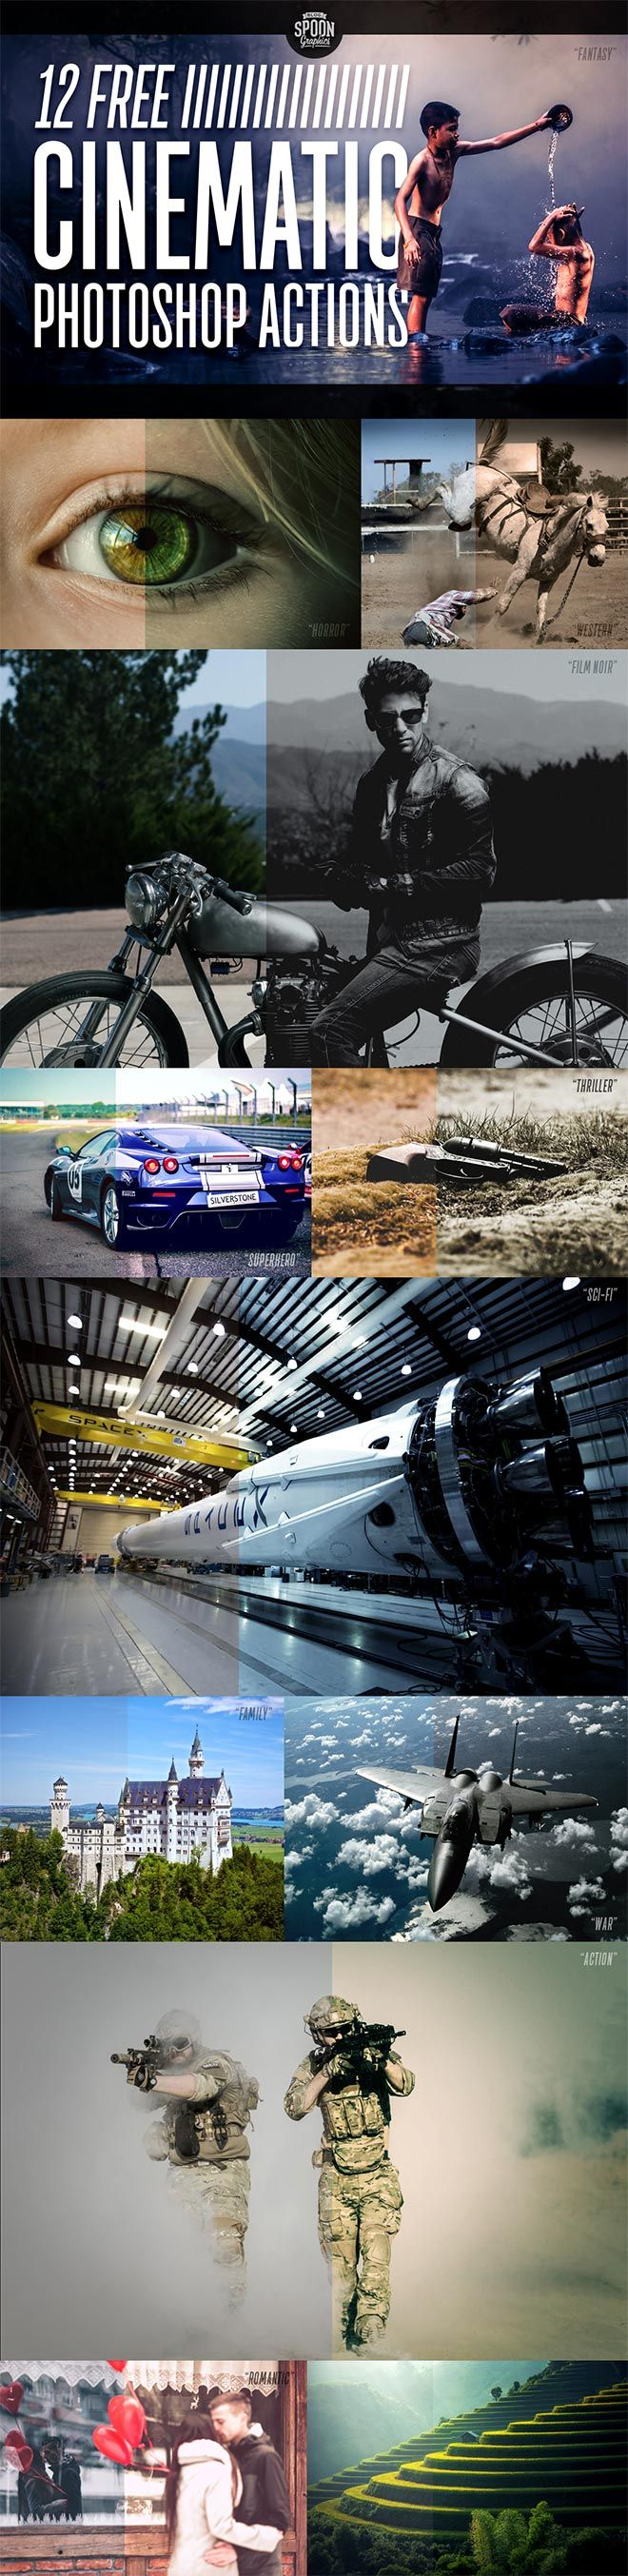 12 Free Cinematic Photo Effect Actions for Adobe Photoshop   Blog.SpoonGraphics by Chris Spooner